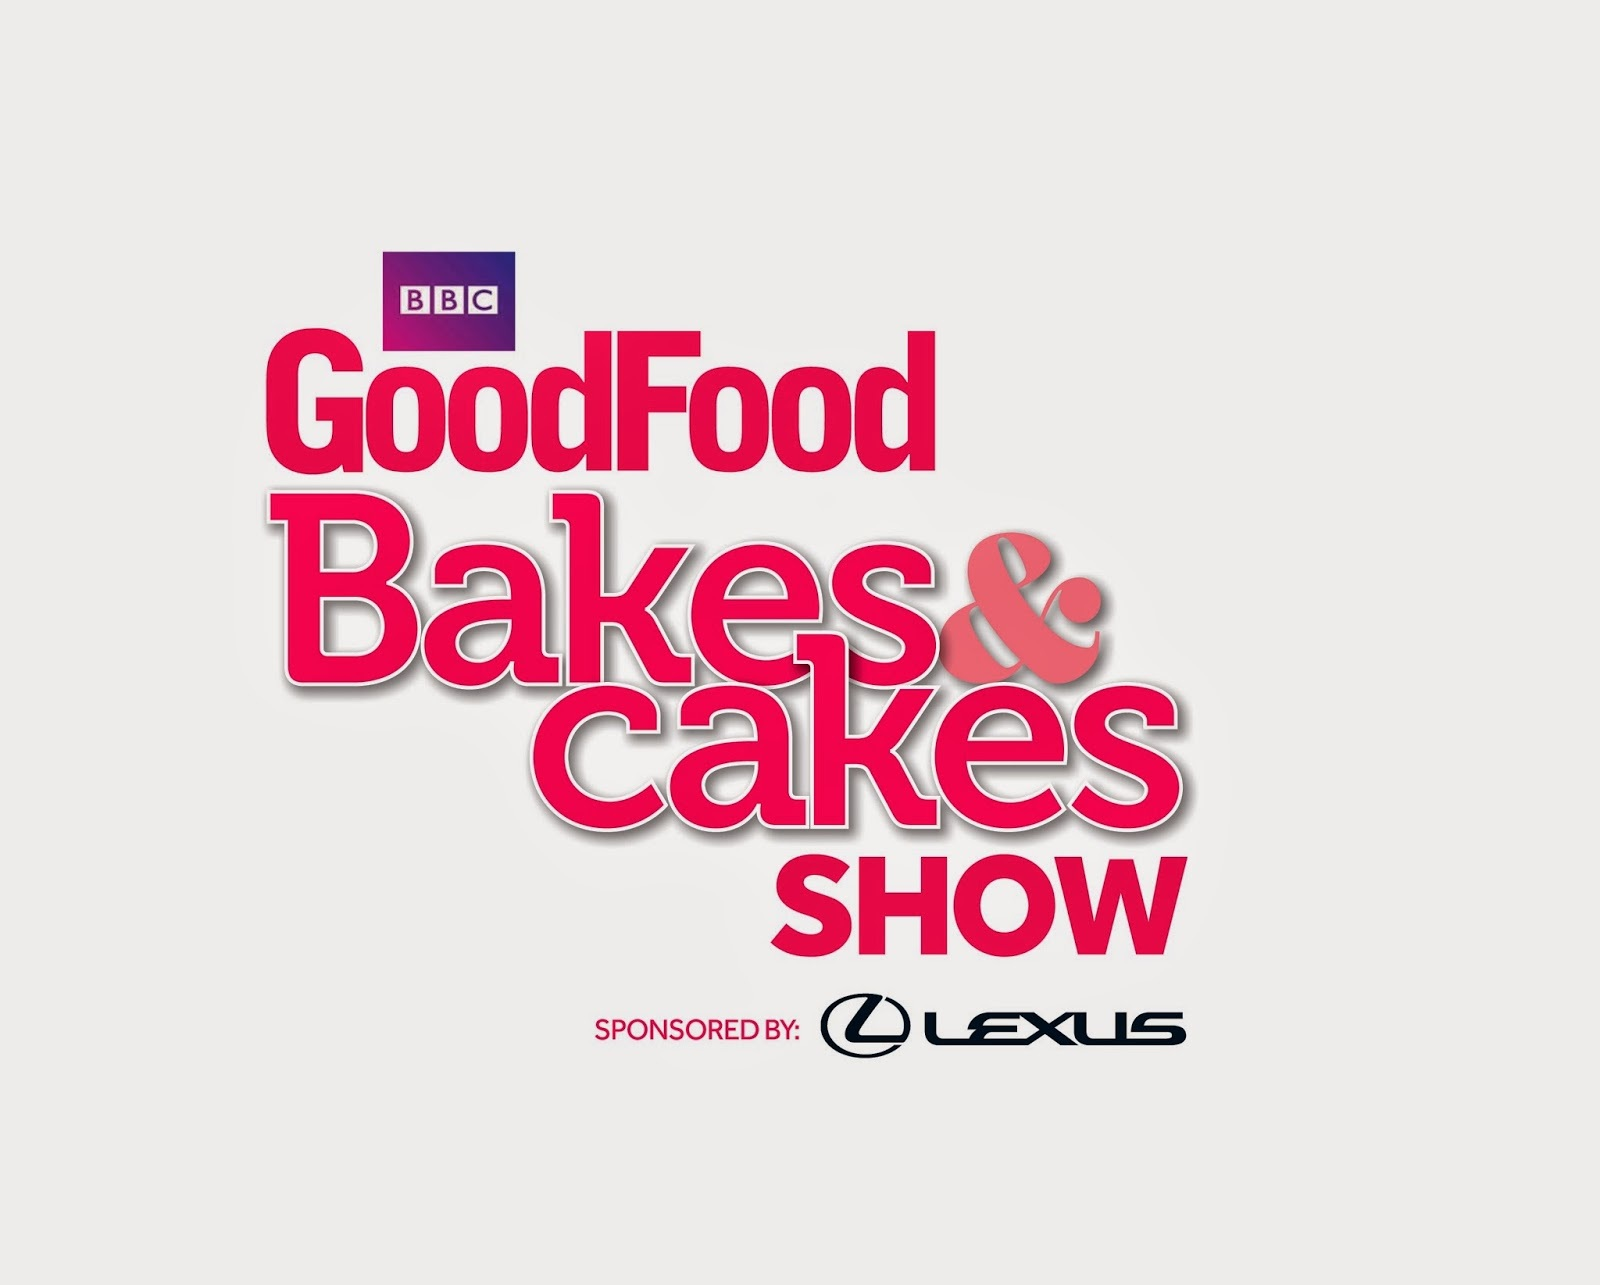 25% off tickets for the BBC Good Food Bakes & Cakes Show